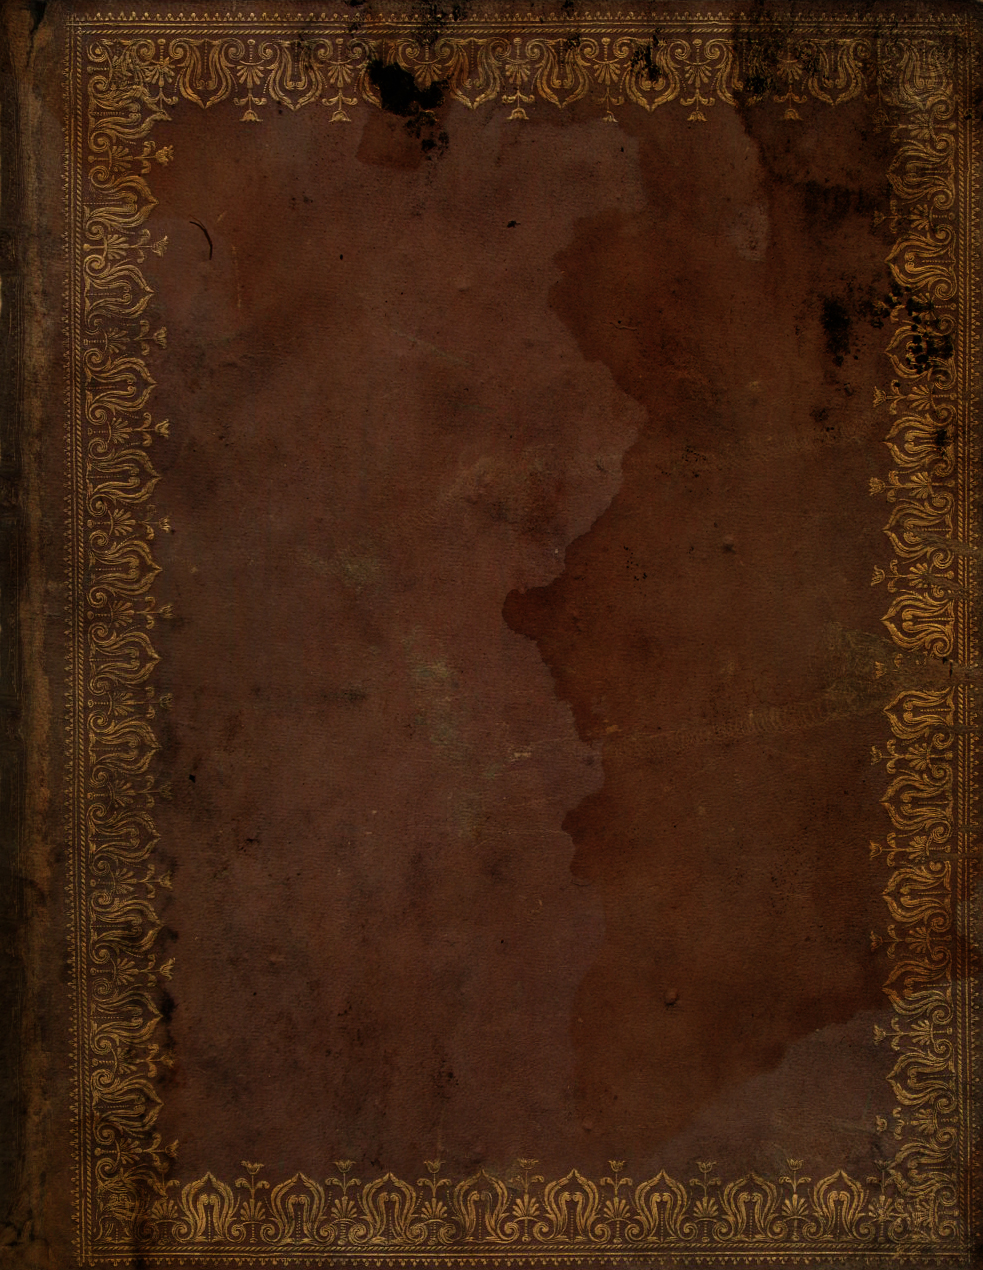 Book Cover Textures : Cover book texture download background